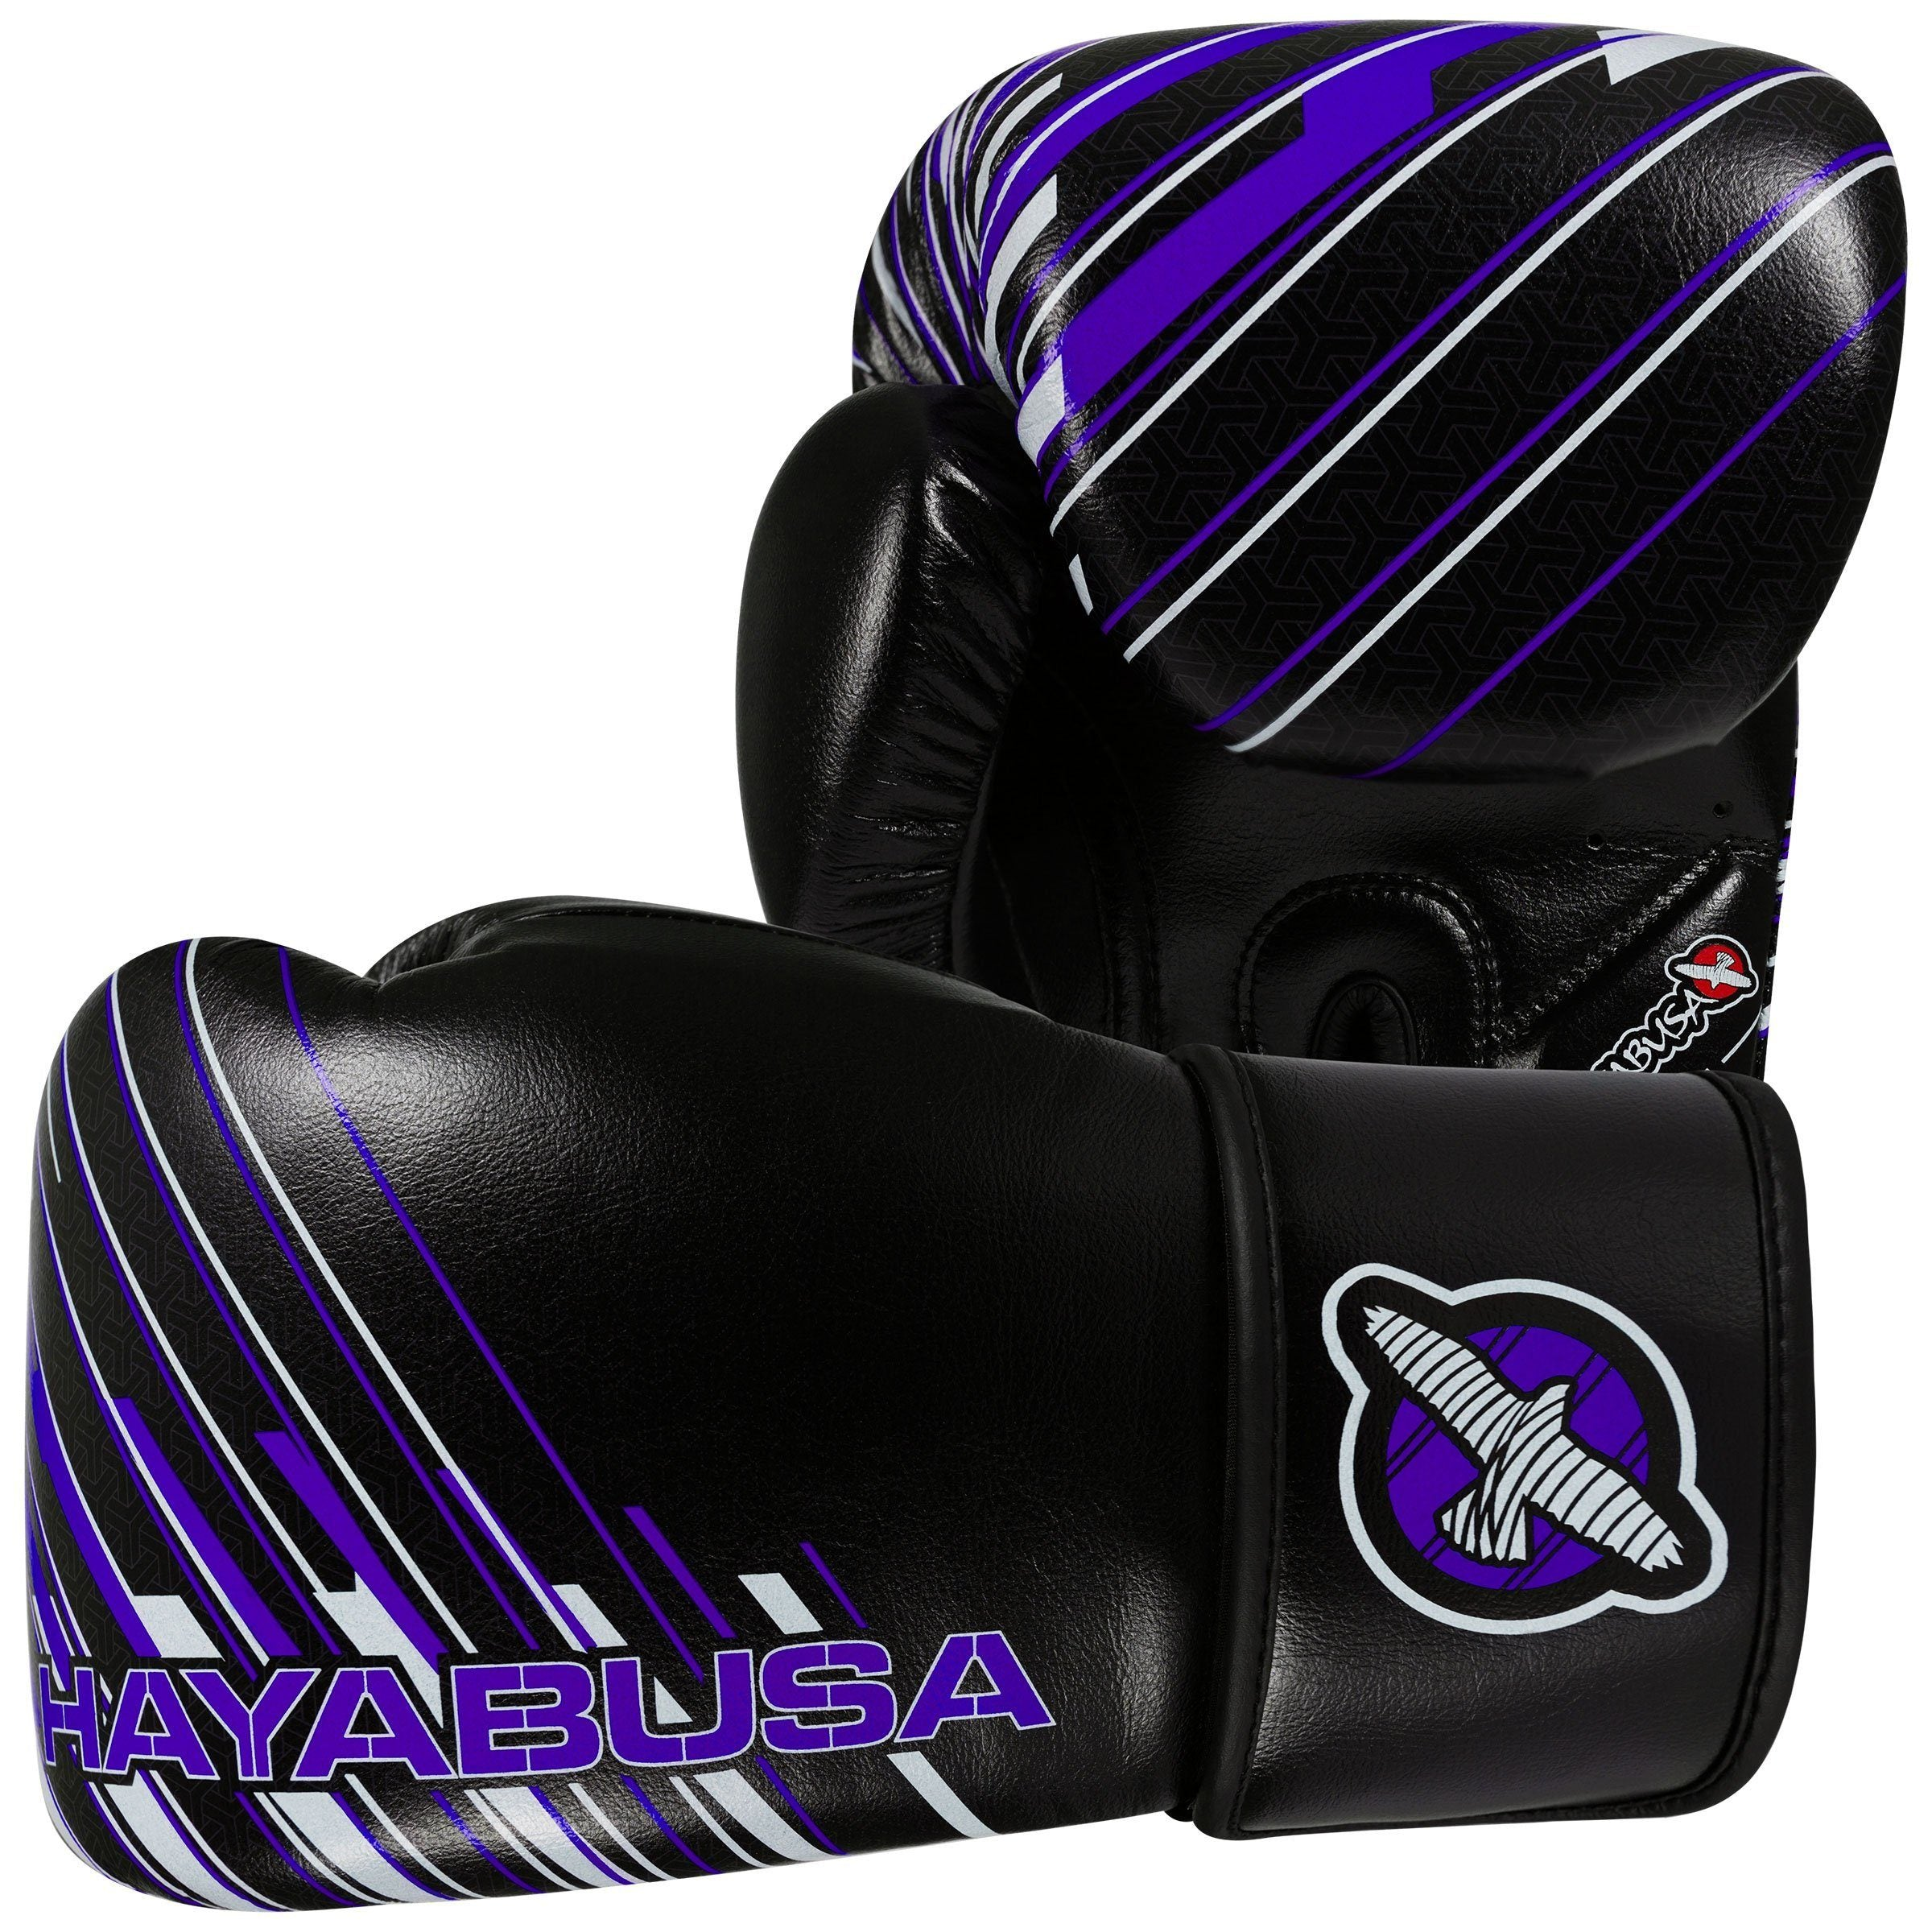 Image of Hayabusa Ikusa Charged Gloves 10 oz.